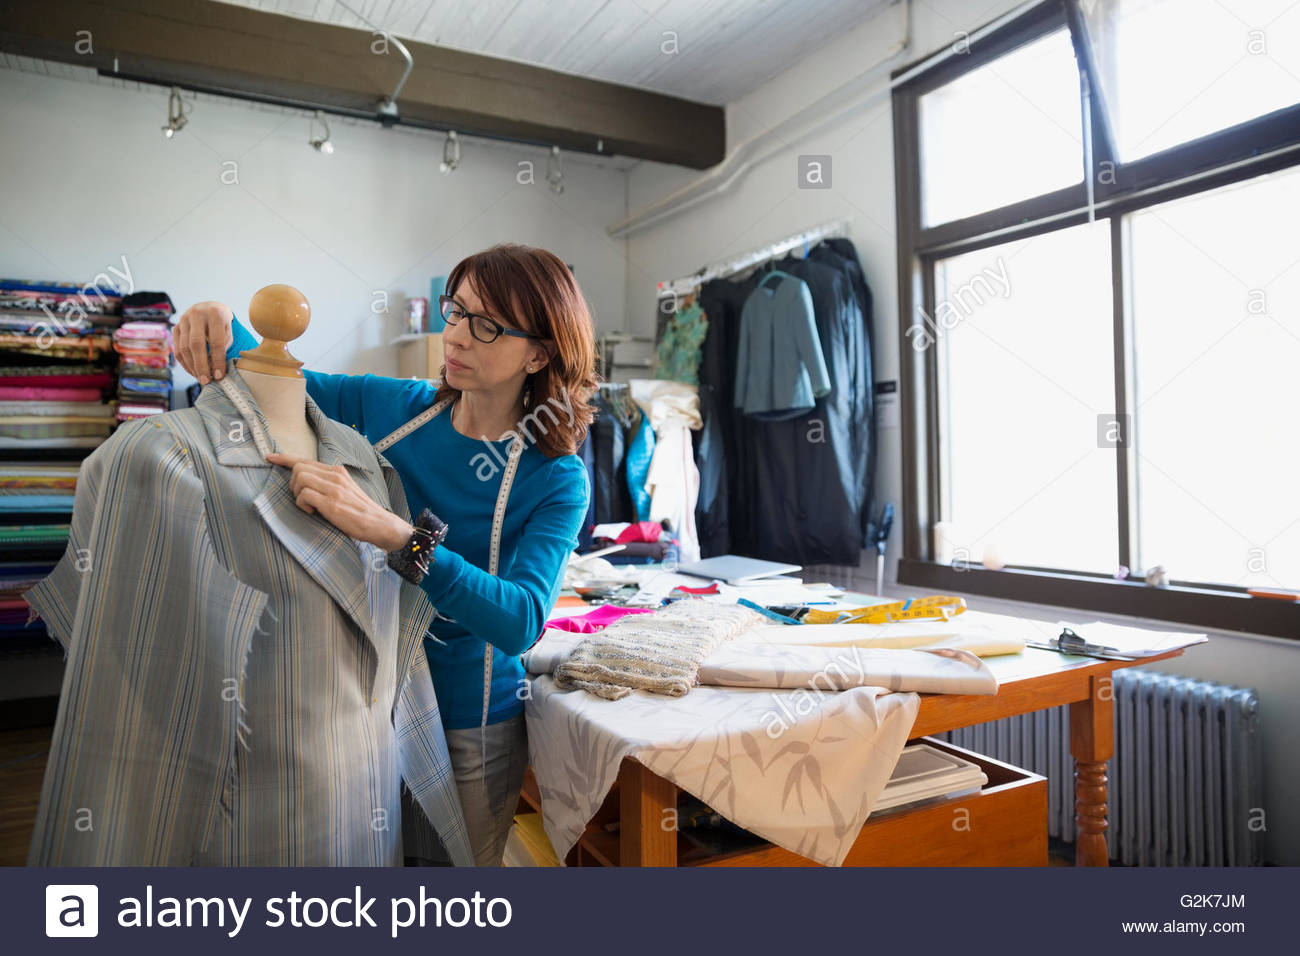 Dressmaker measuring suit on dressmakers model - Stock Image